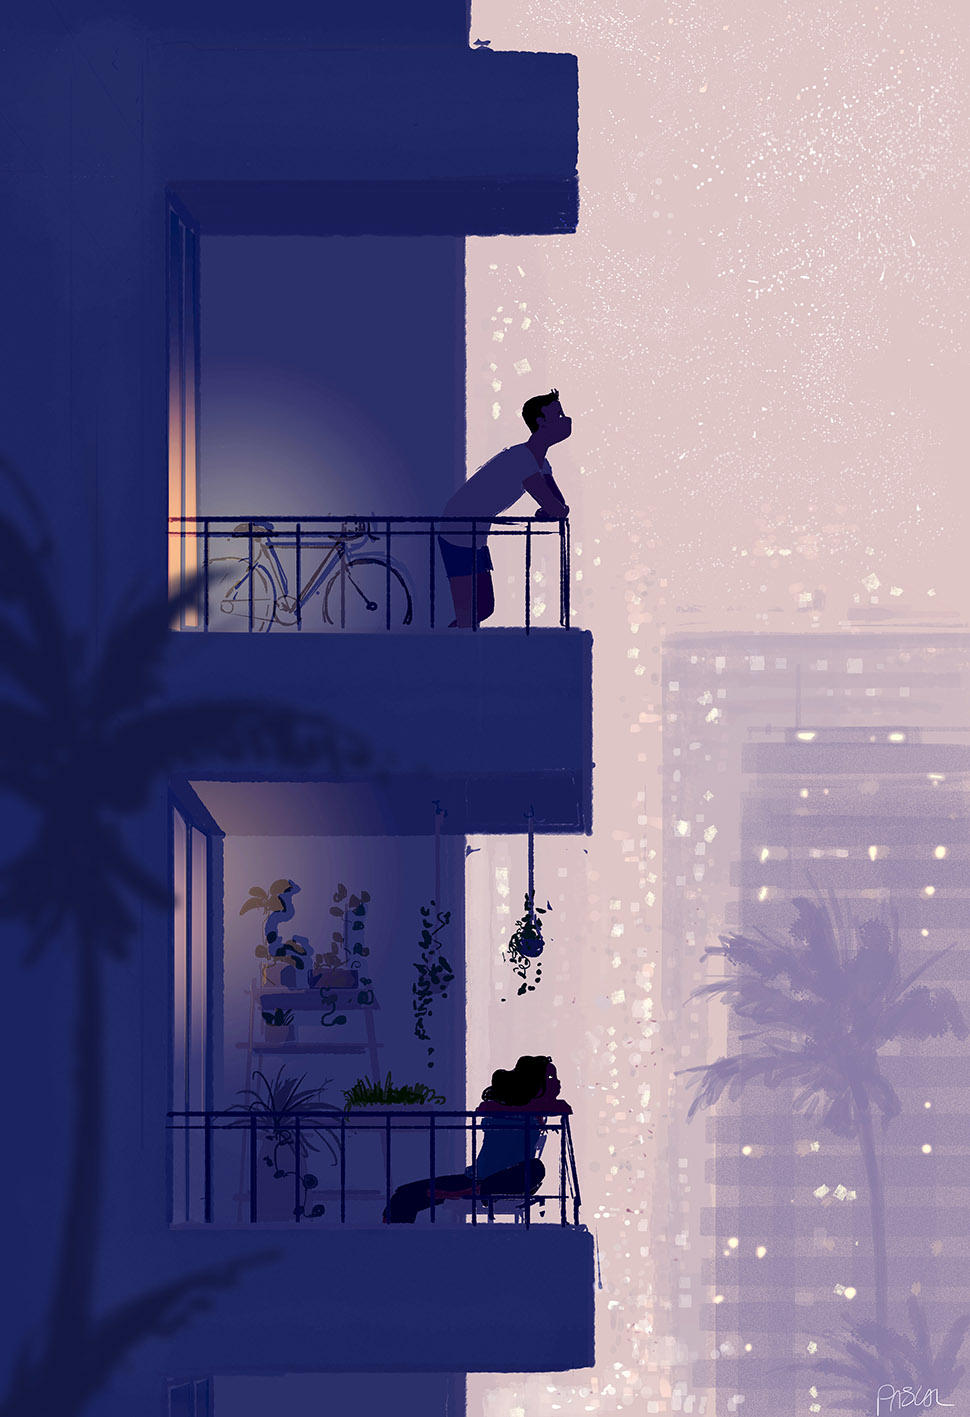 The Early hours by PascalCampion